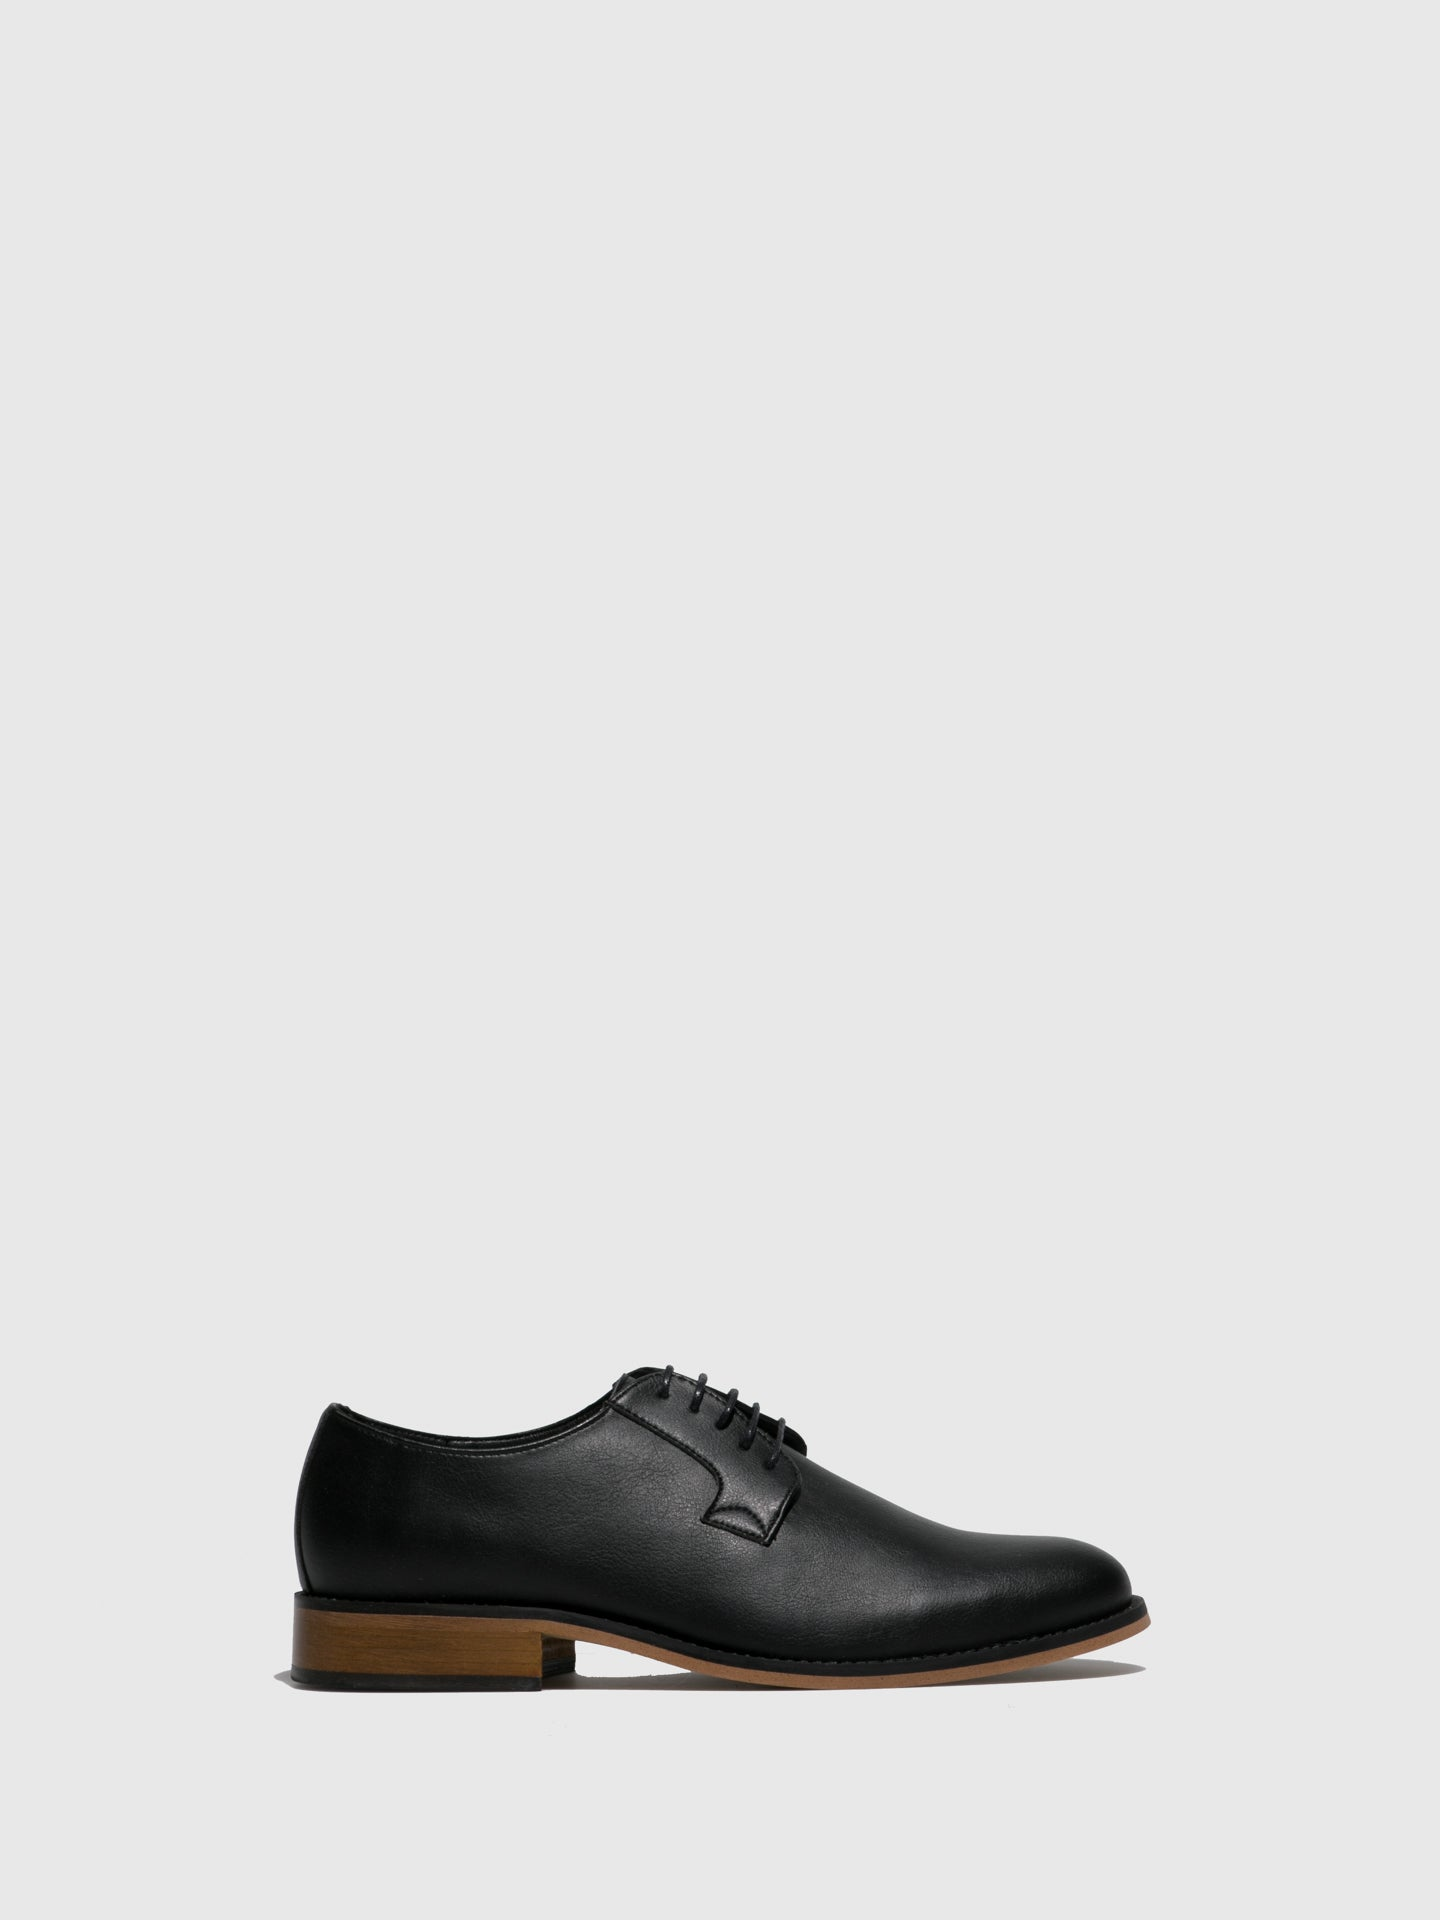 NAE Vegan Shoes Black Classic Shoes